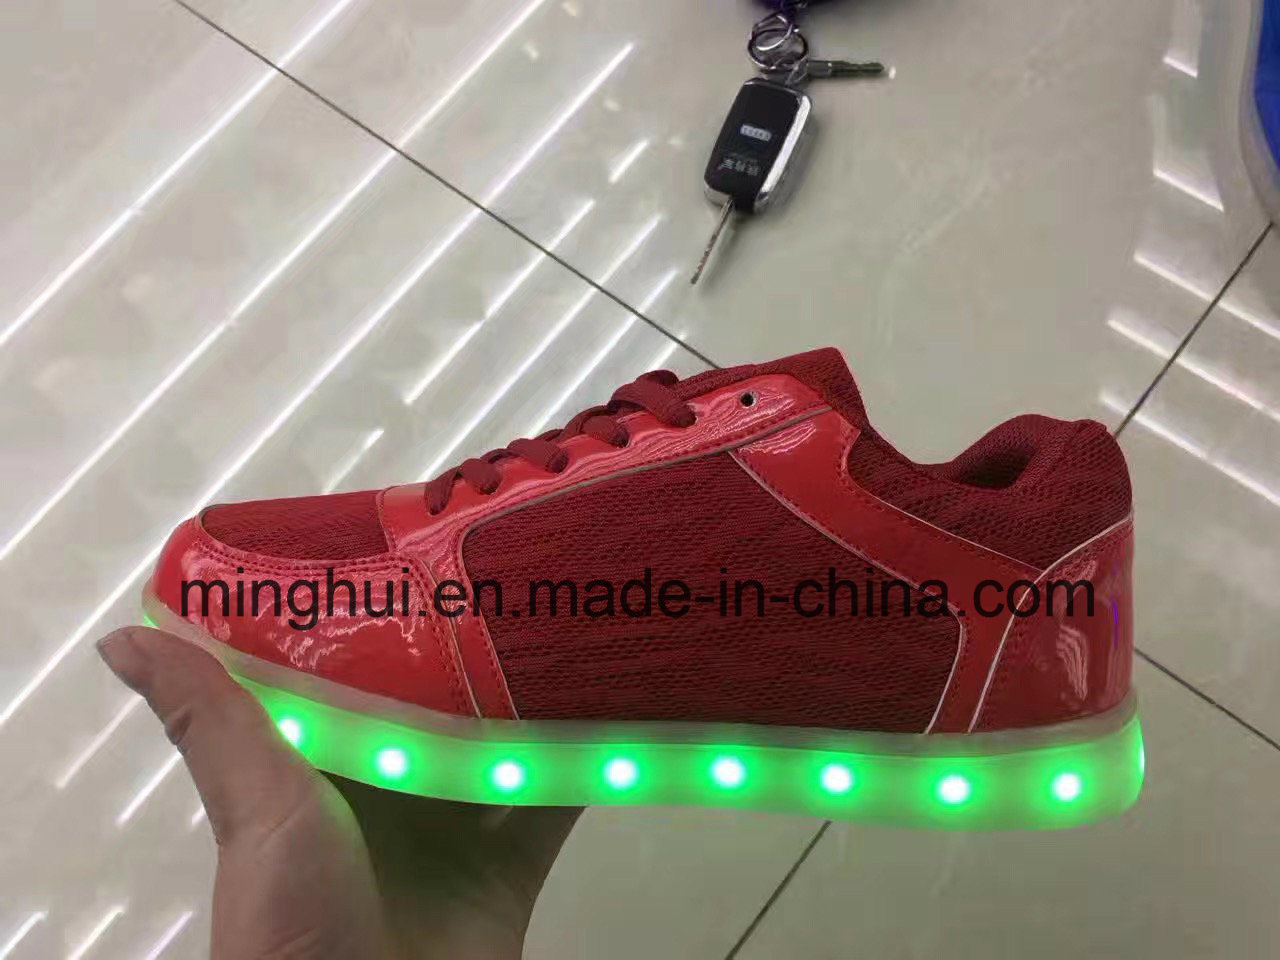 f1da6eb6c China Wholesale Shoes USB Charger Light up LED Shoes for Women - China  Running Shoes